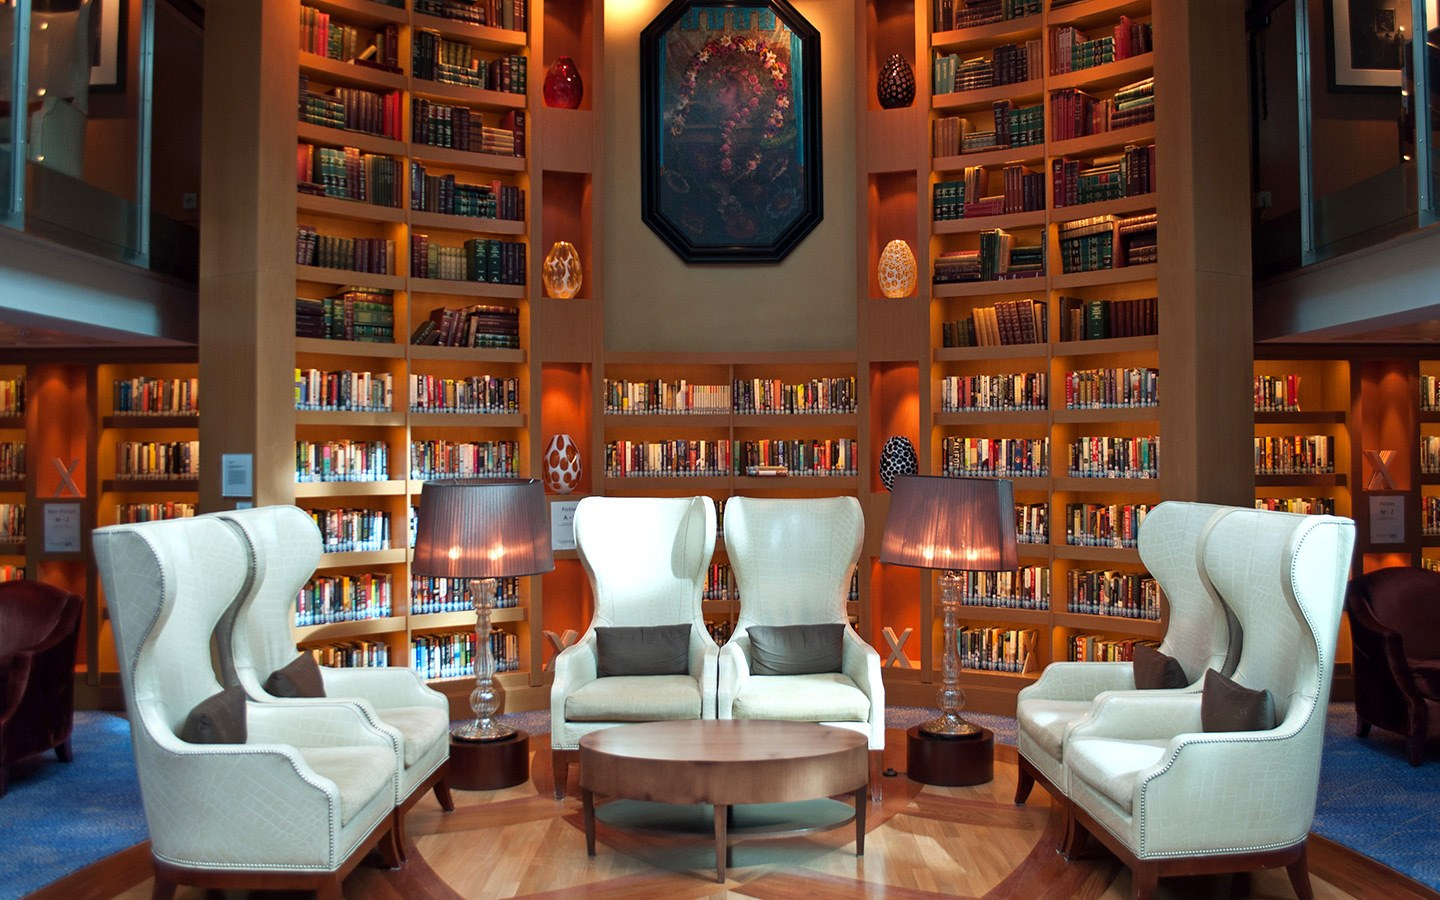 The Celebrity Equinox cruise ship library